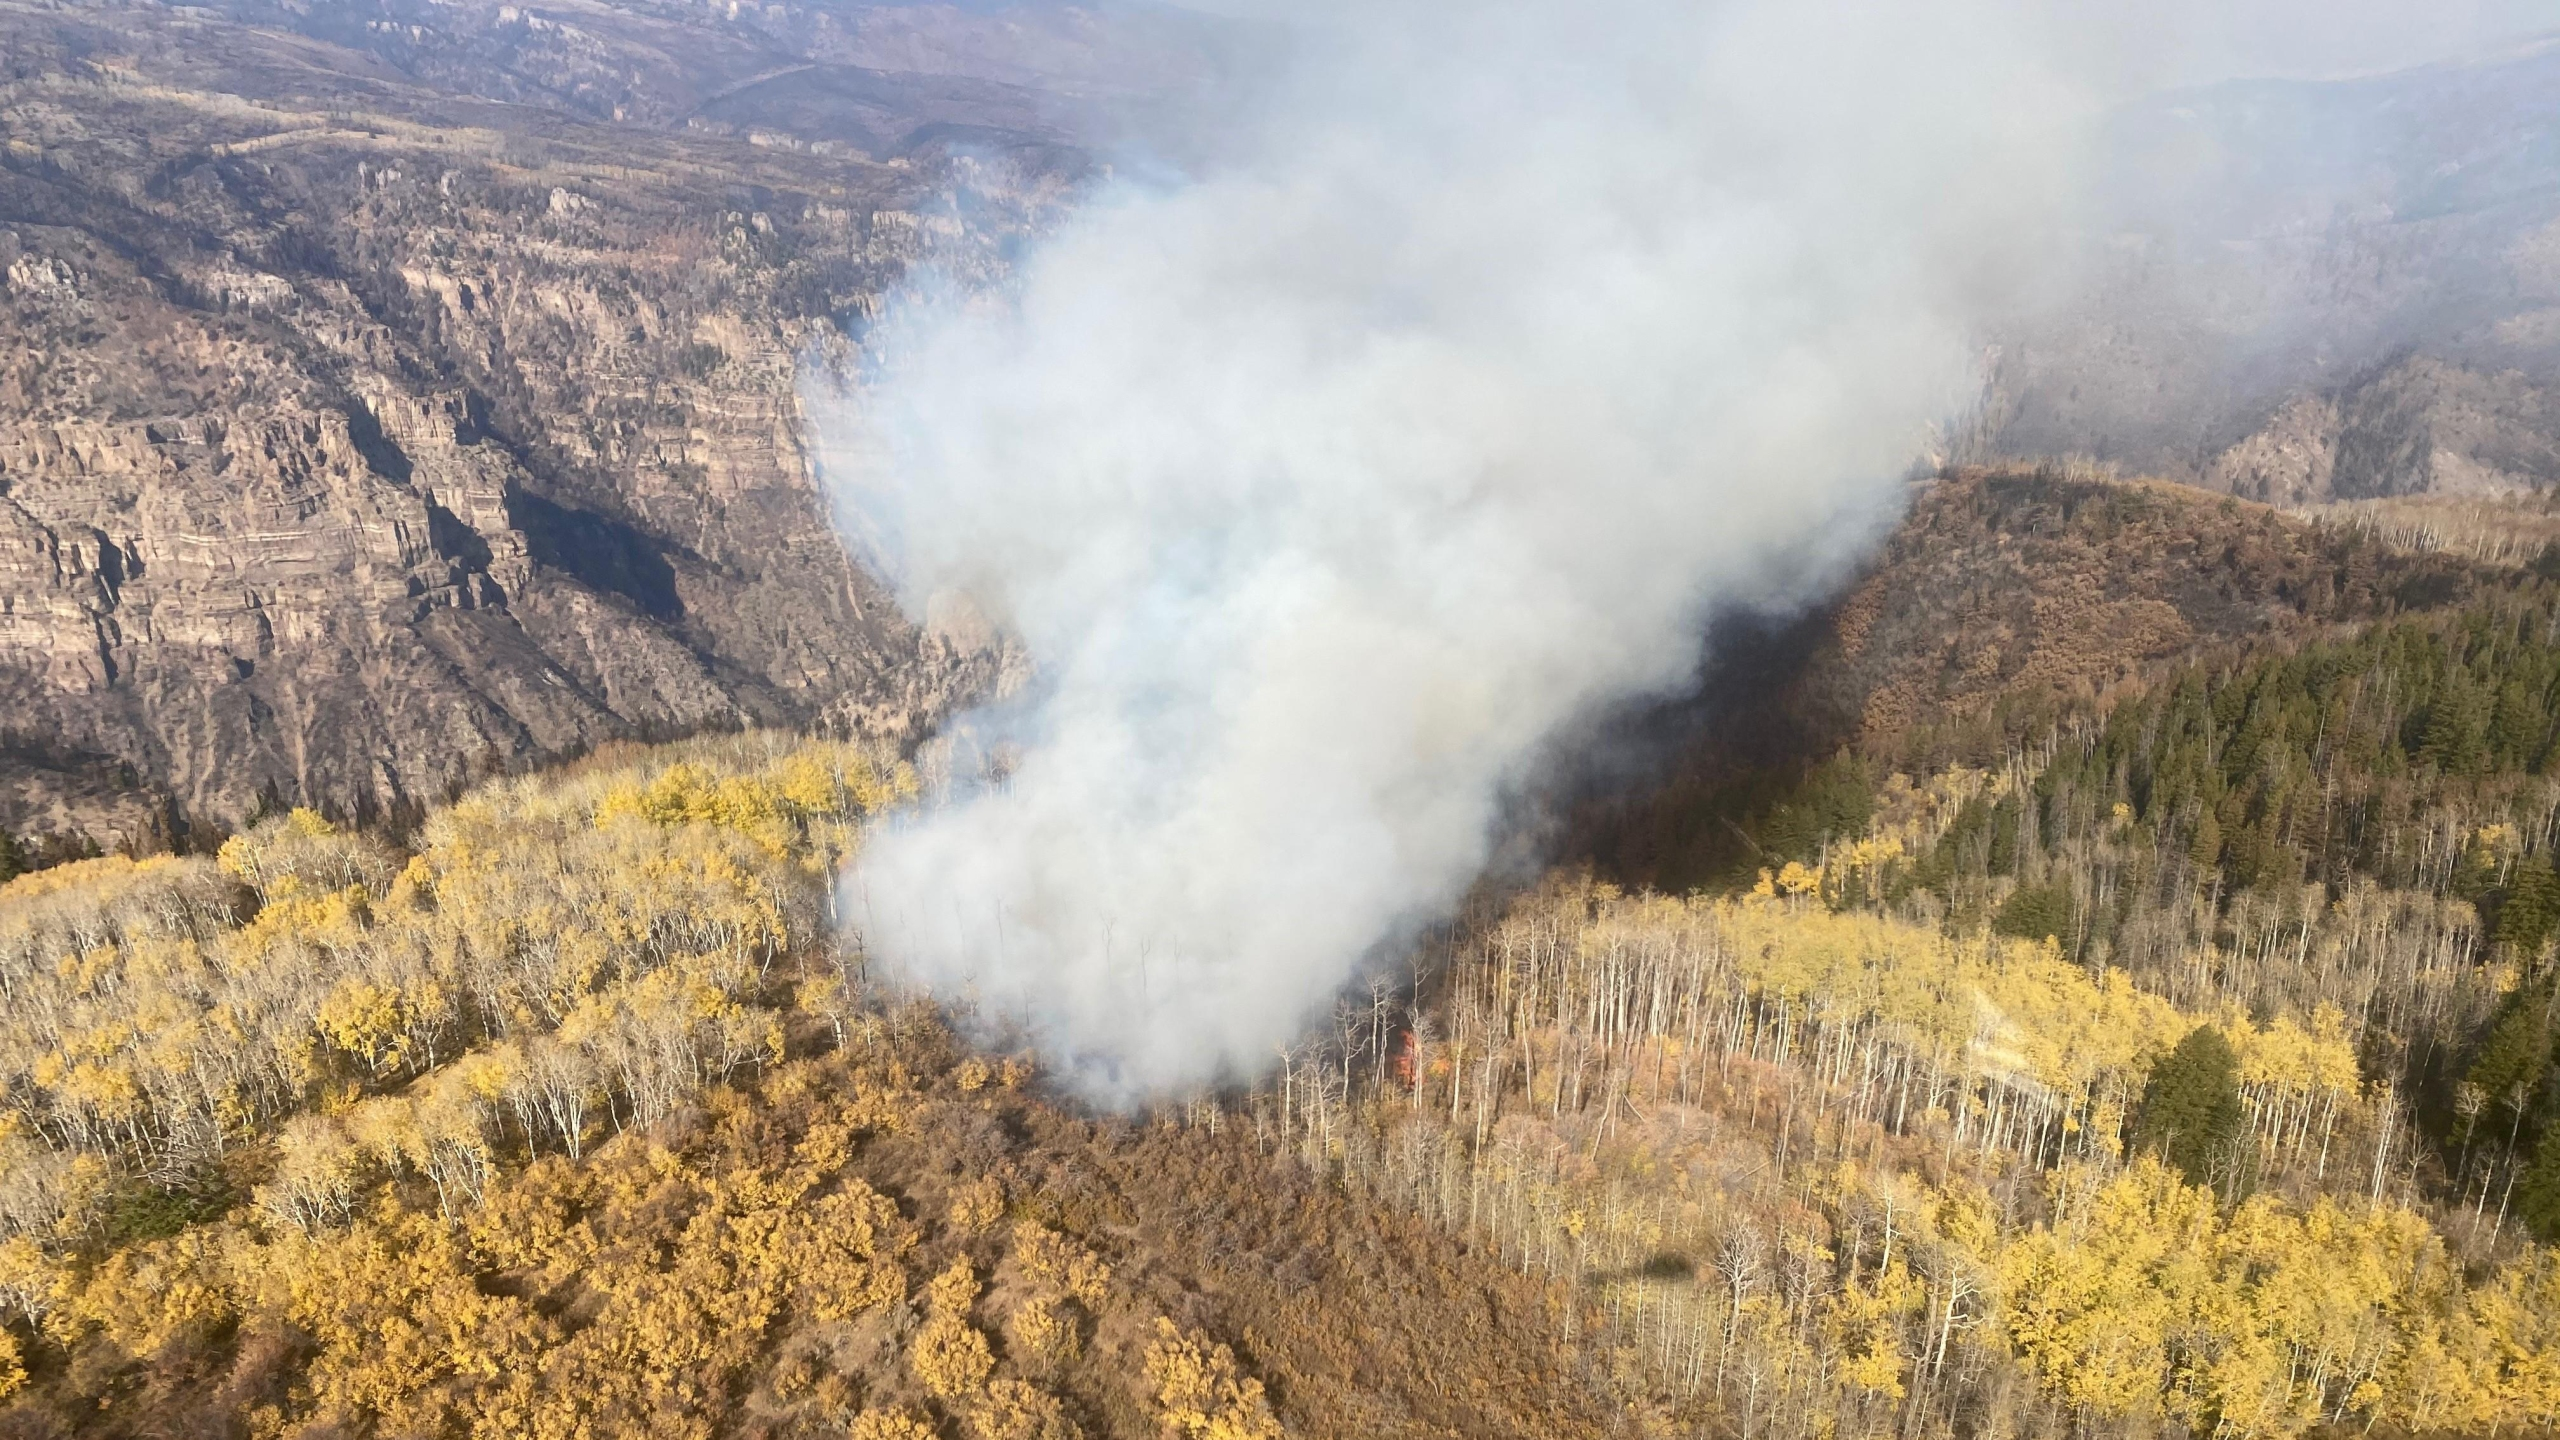 Smoke from Devil's Hole in the Grizzly Creek Fire Monday, October 5. / Photo courtesy Grizzly Creek Fire Information